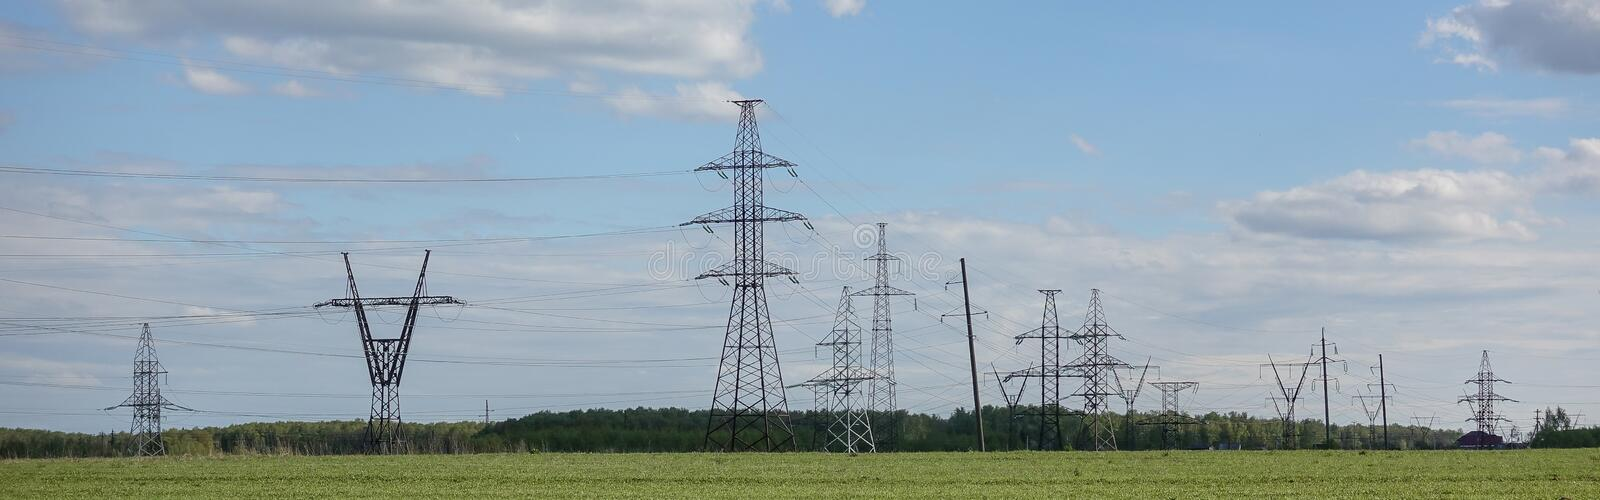 Panorama of high voltage substation. Distribution electrical power. Silhouettes of pylons and towers stock photos